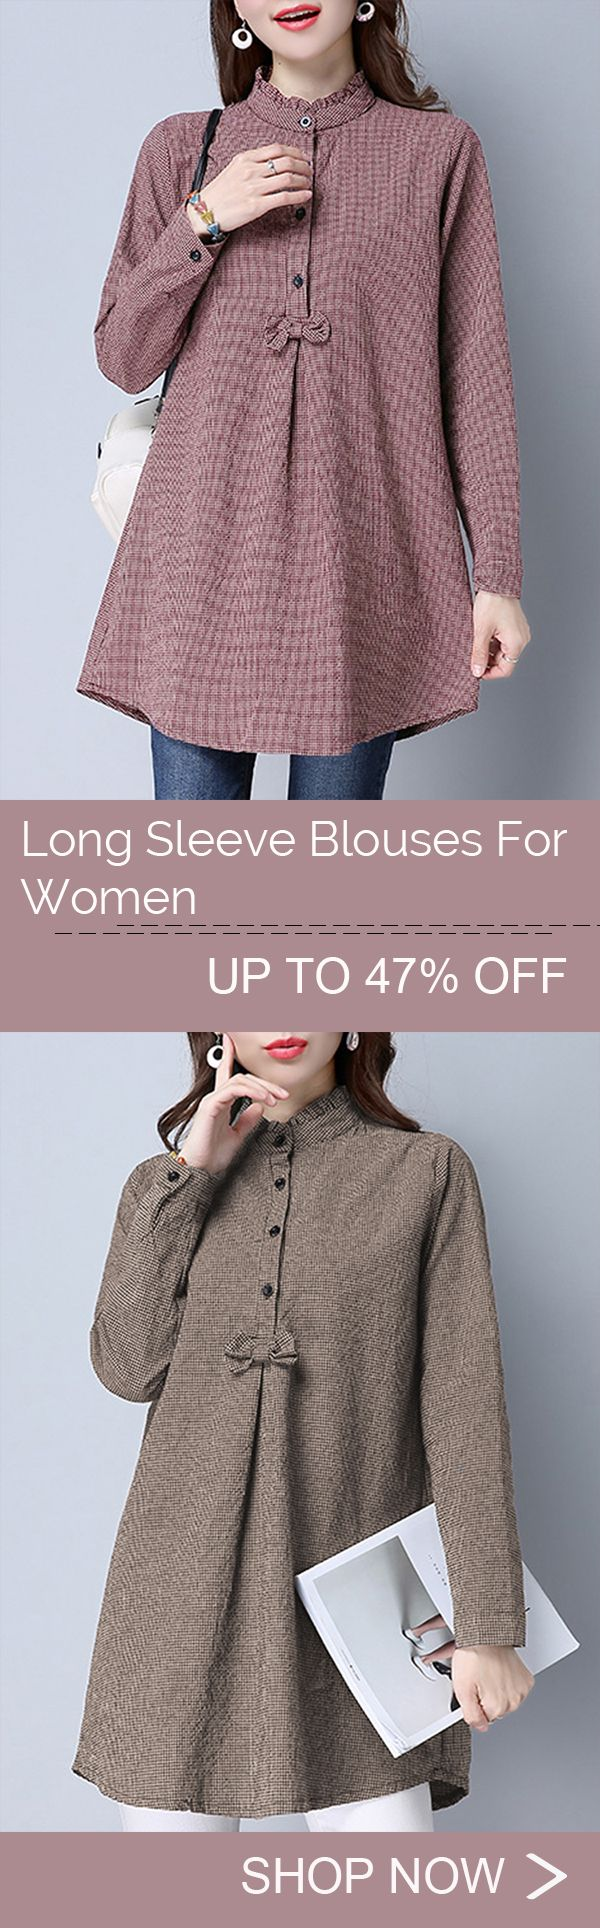 [Newchic Online Shopping] 47%OFF Gracila Women's Irregular Plaid Print Blouses with Long Sleeve and Bowknot